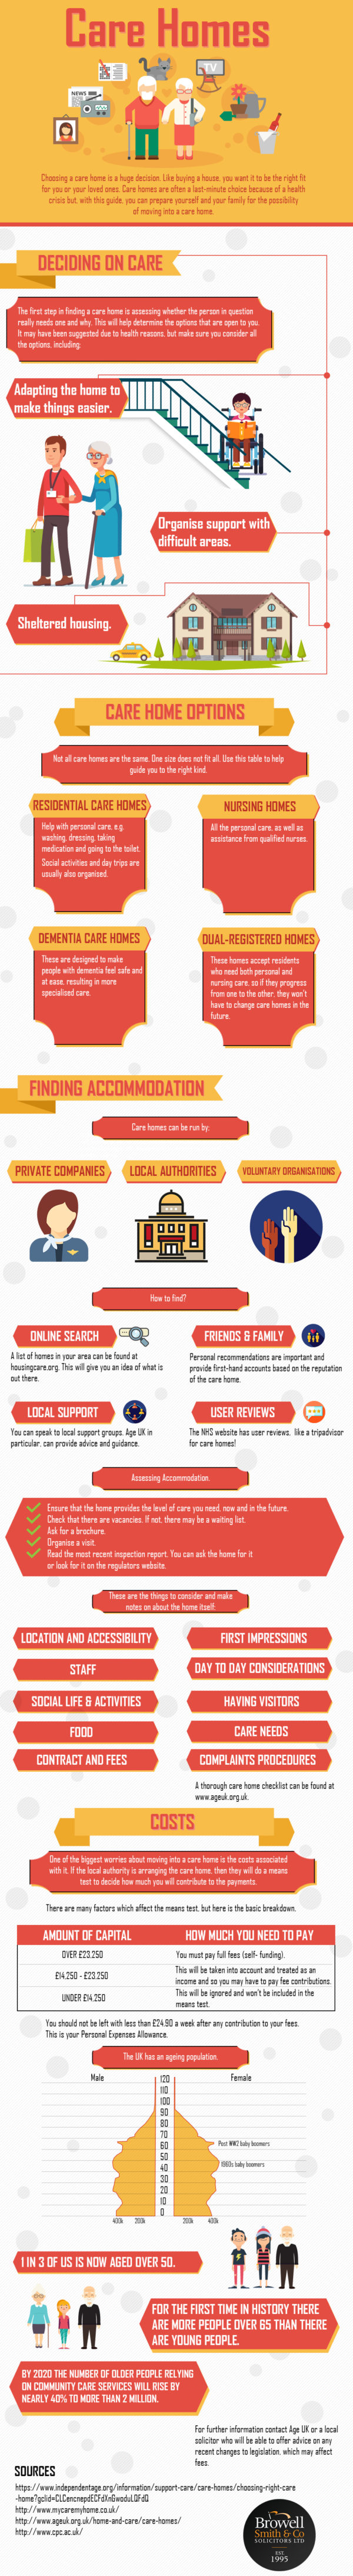 Care Homes [Infographic]